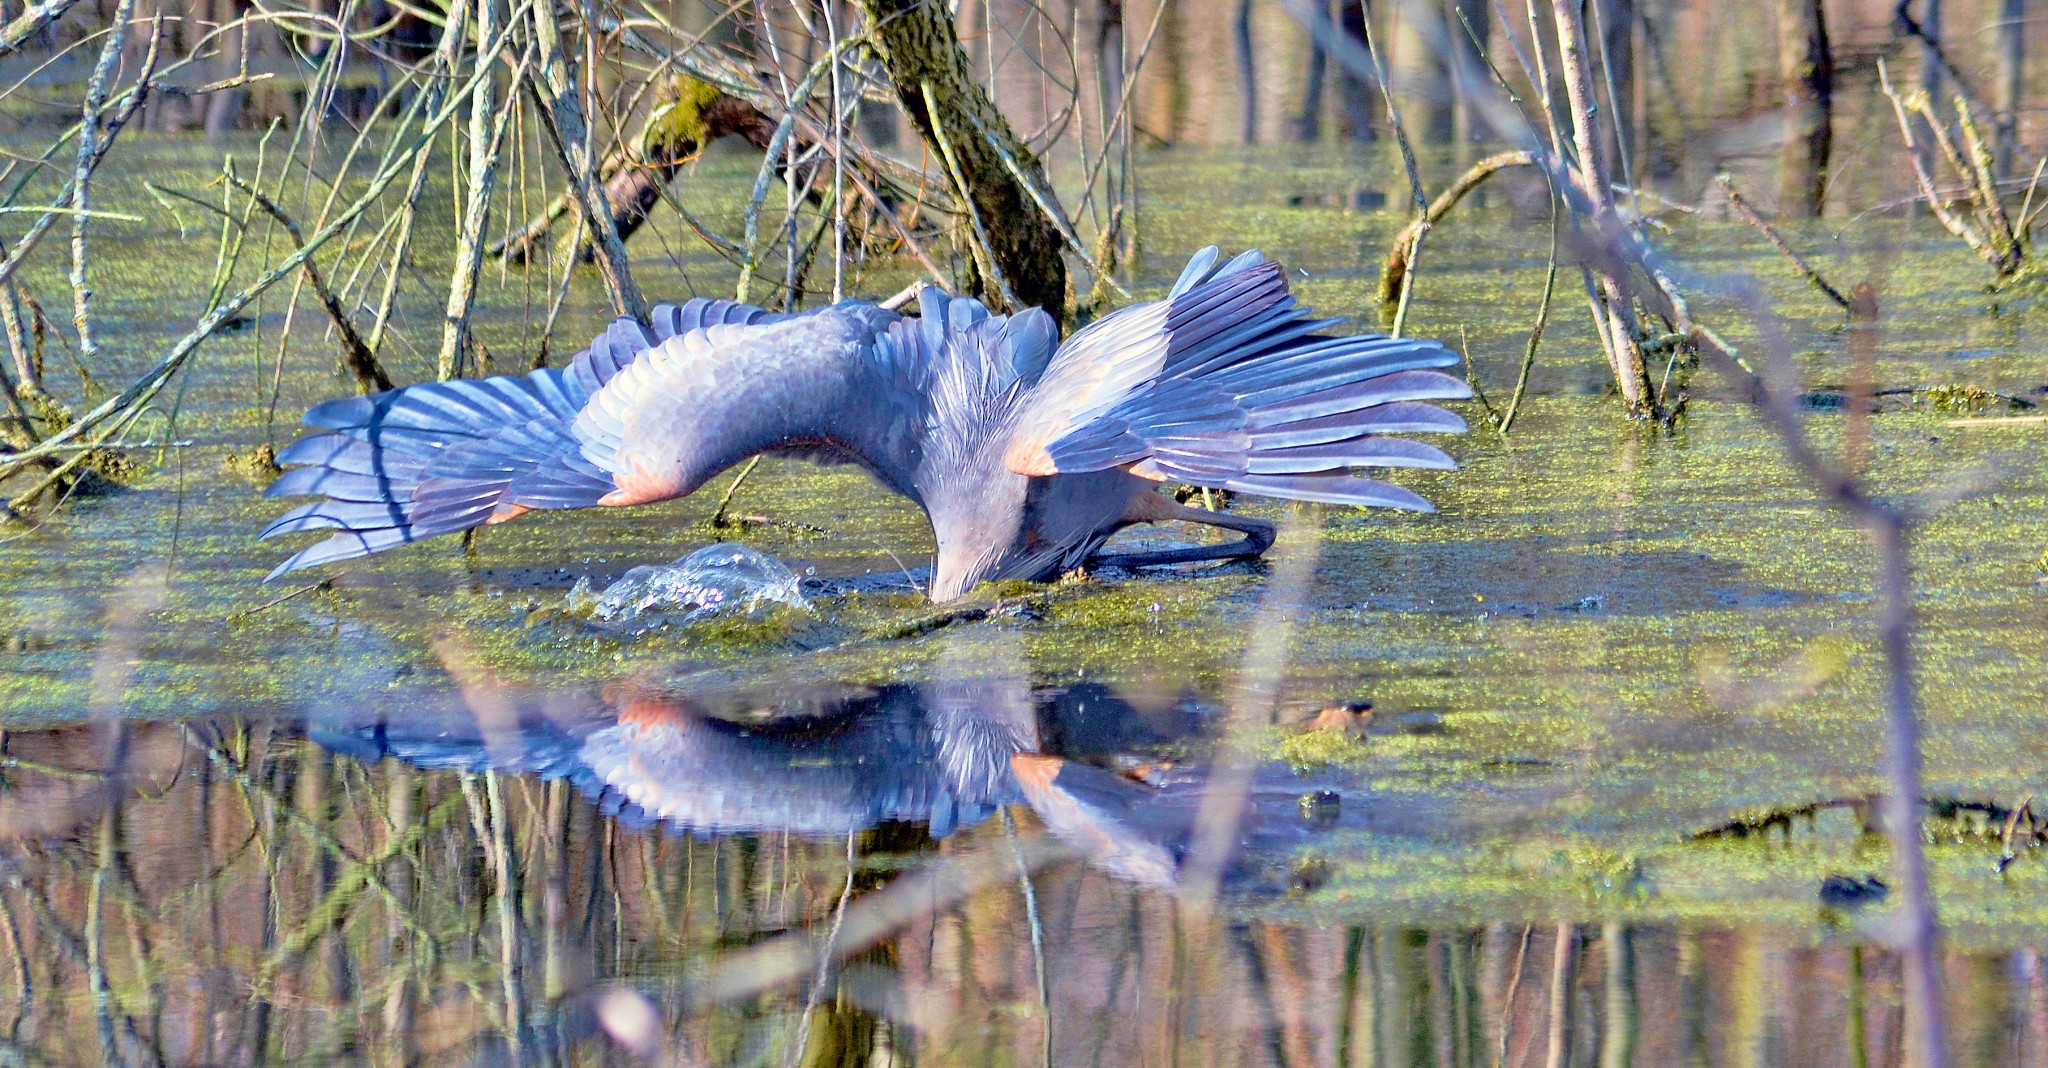 Great Blue Heron goes fishing<br />Yes, this Great Blue Heron is fishing at the Ottawa National Wildlife Refuge. The Great Blue Heron, America's largest heron, is a master at catching fish. (Photo by Maggi Dandar)